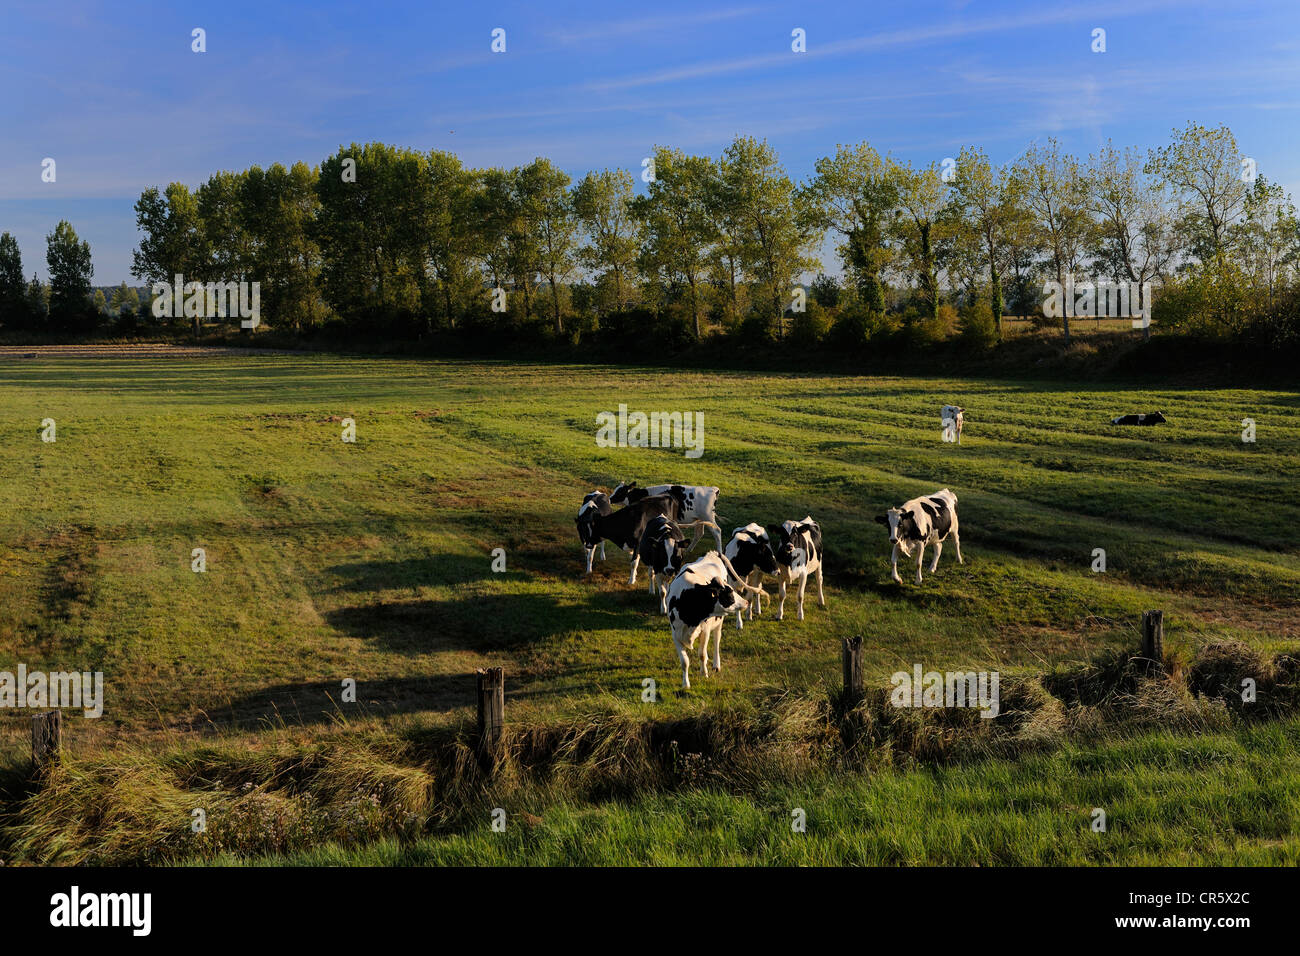 France, Ille et Vilaine, the polder of Mont Saint Michel, cows in meadow - Stock Image